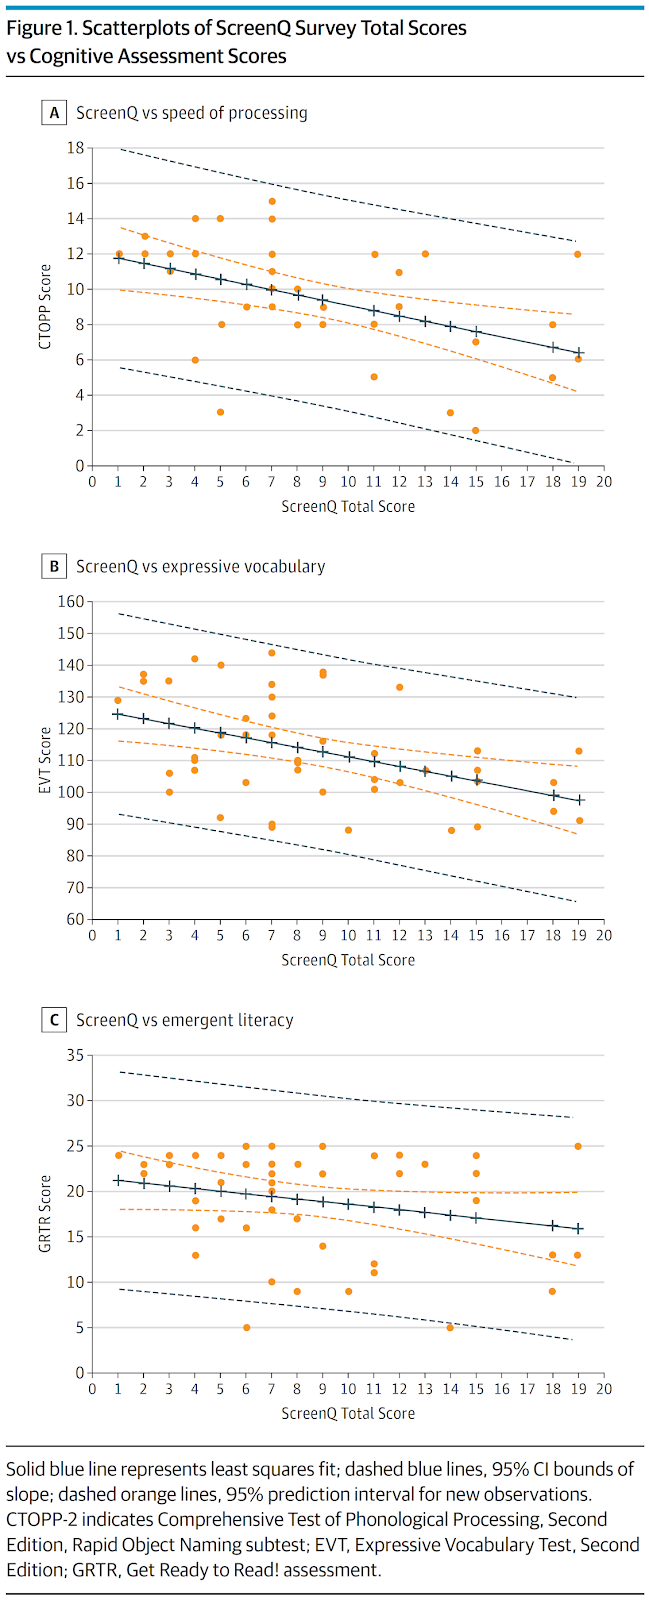 Figure 1. Scatterplots of ScreenQ Survey Total Scores vs Cognitive Assessment Scores